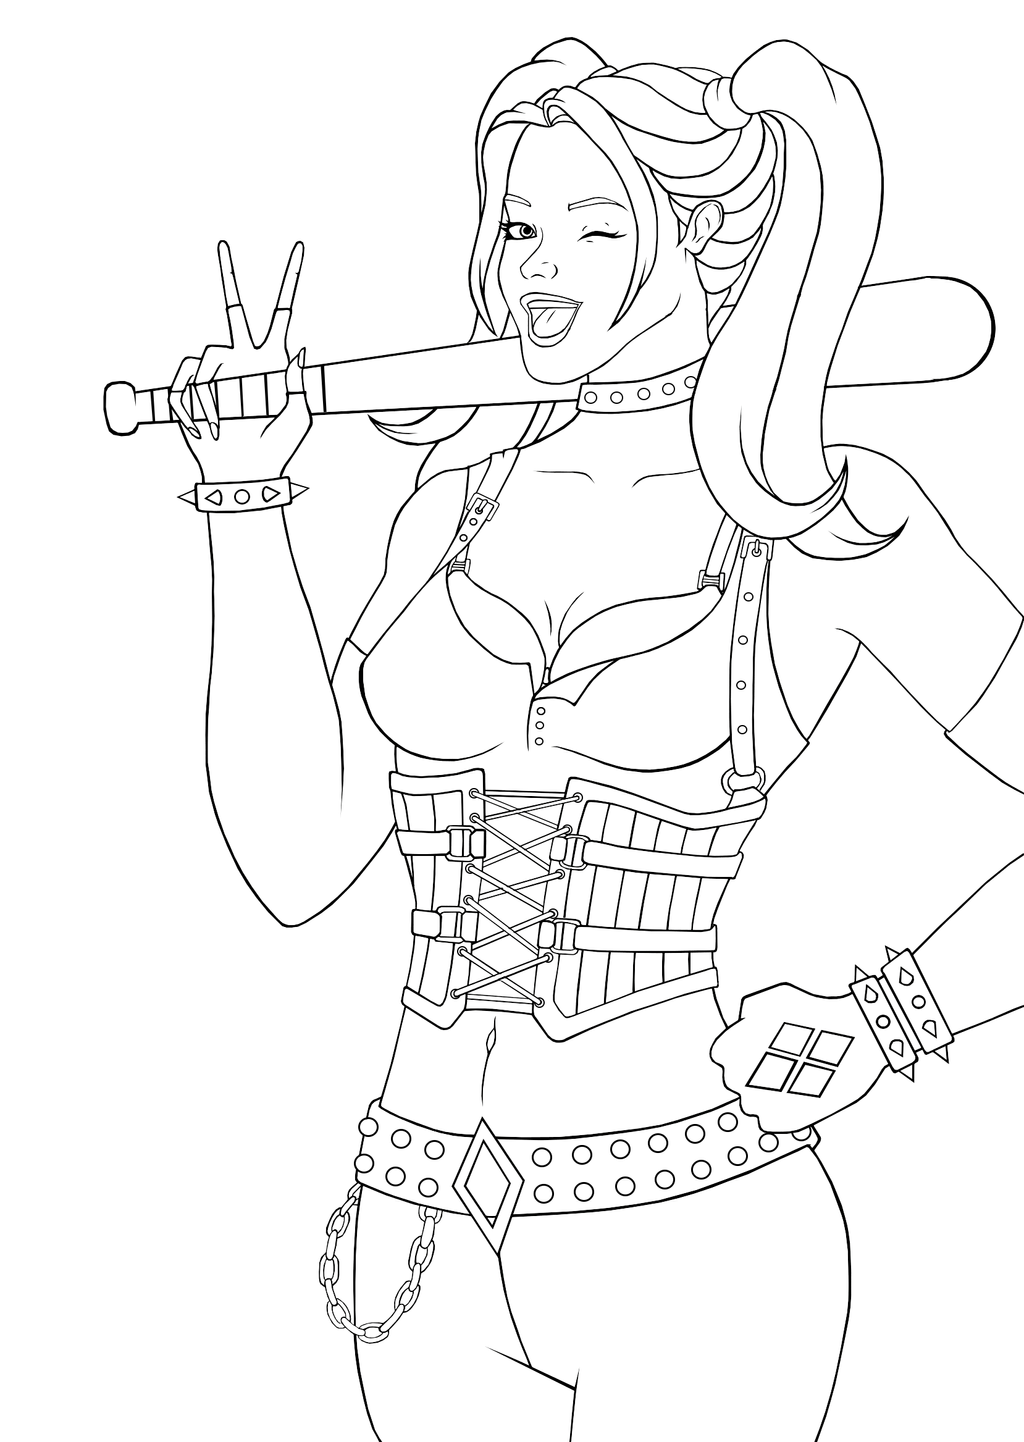 harley quinn coloring pages - photo#22